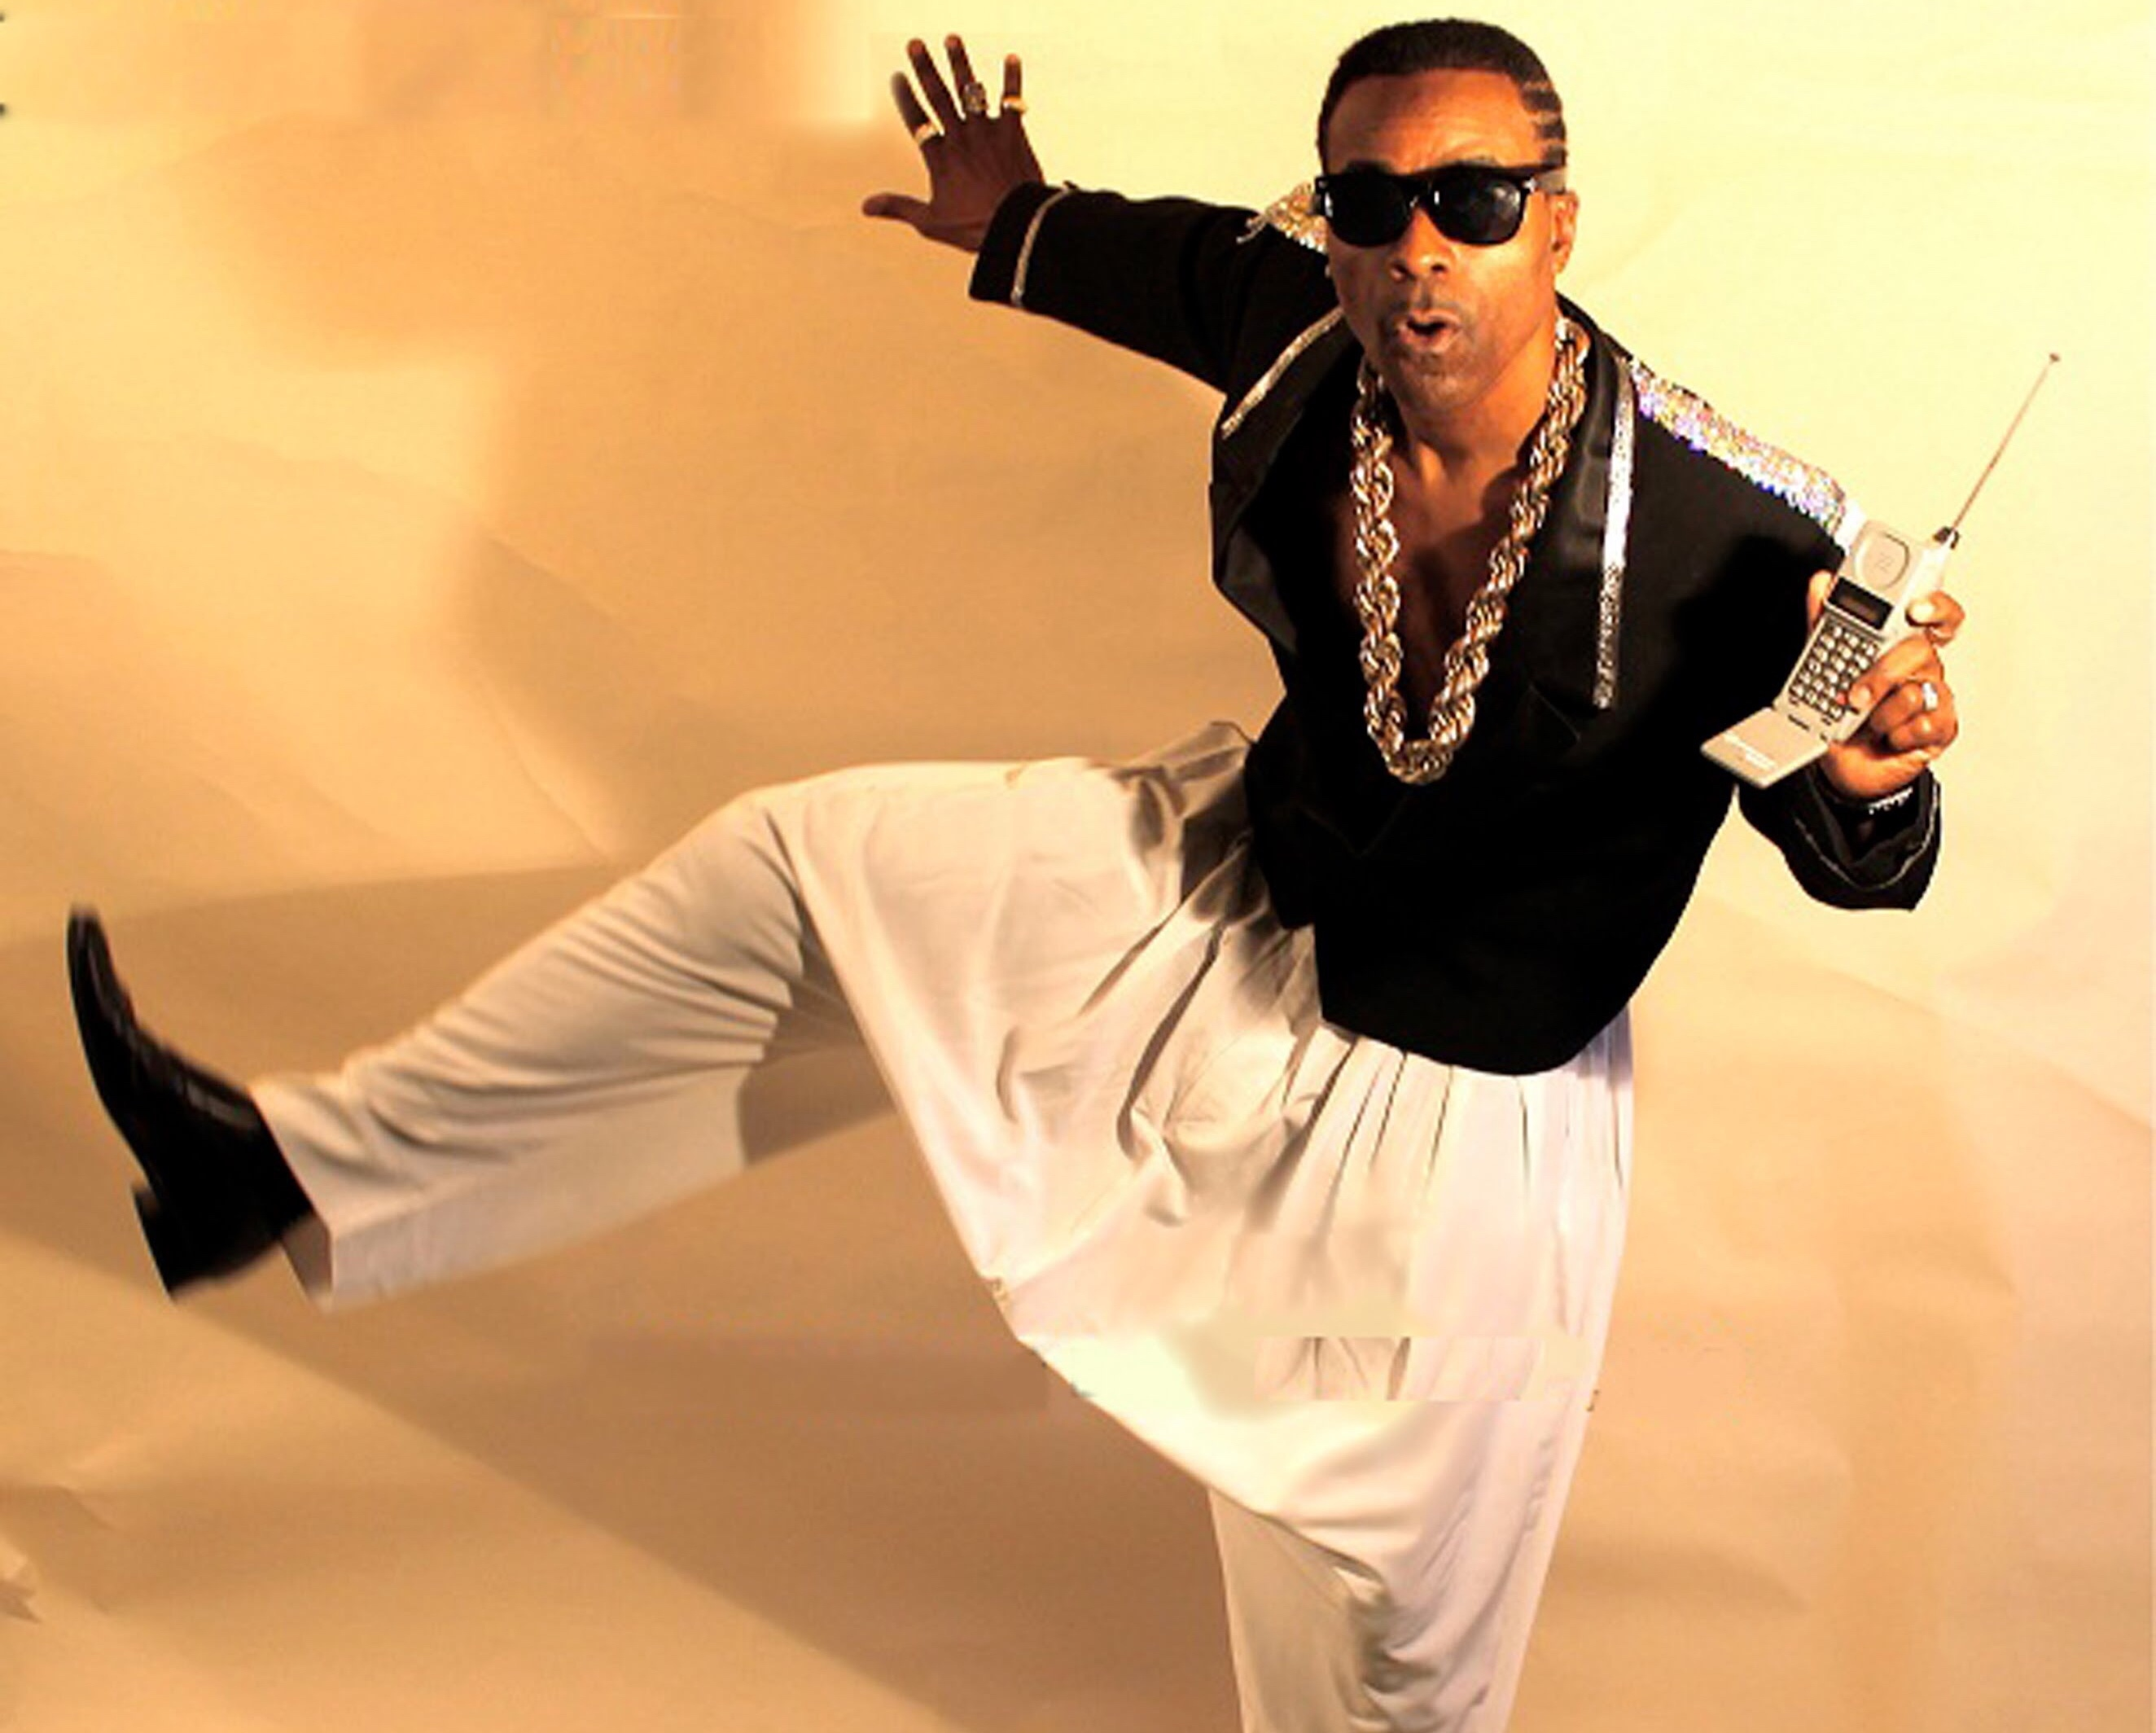 An MC Hammer outfit is close to ideal